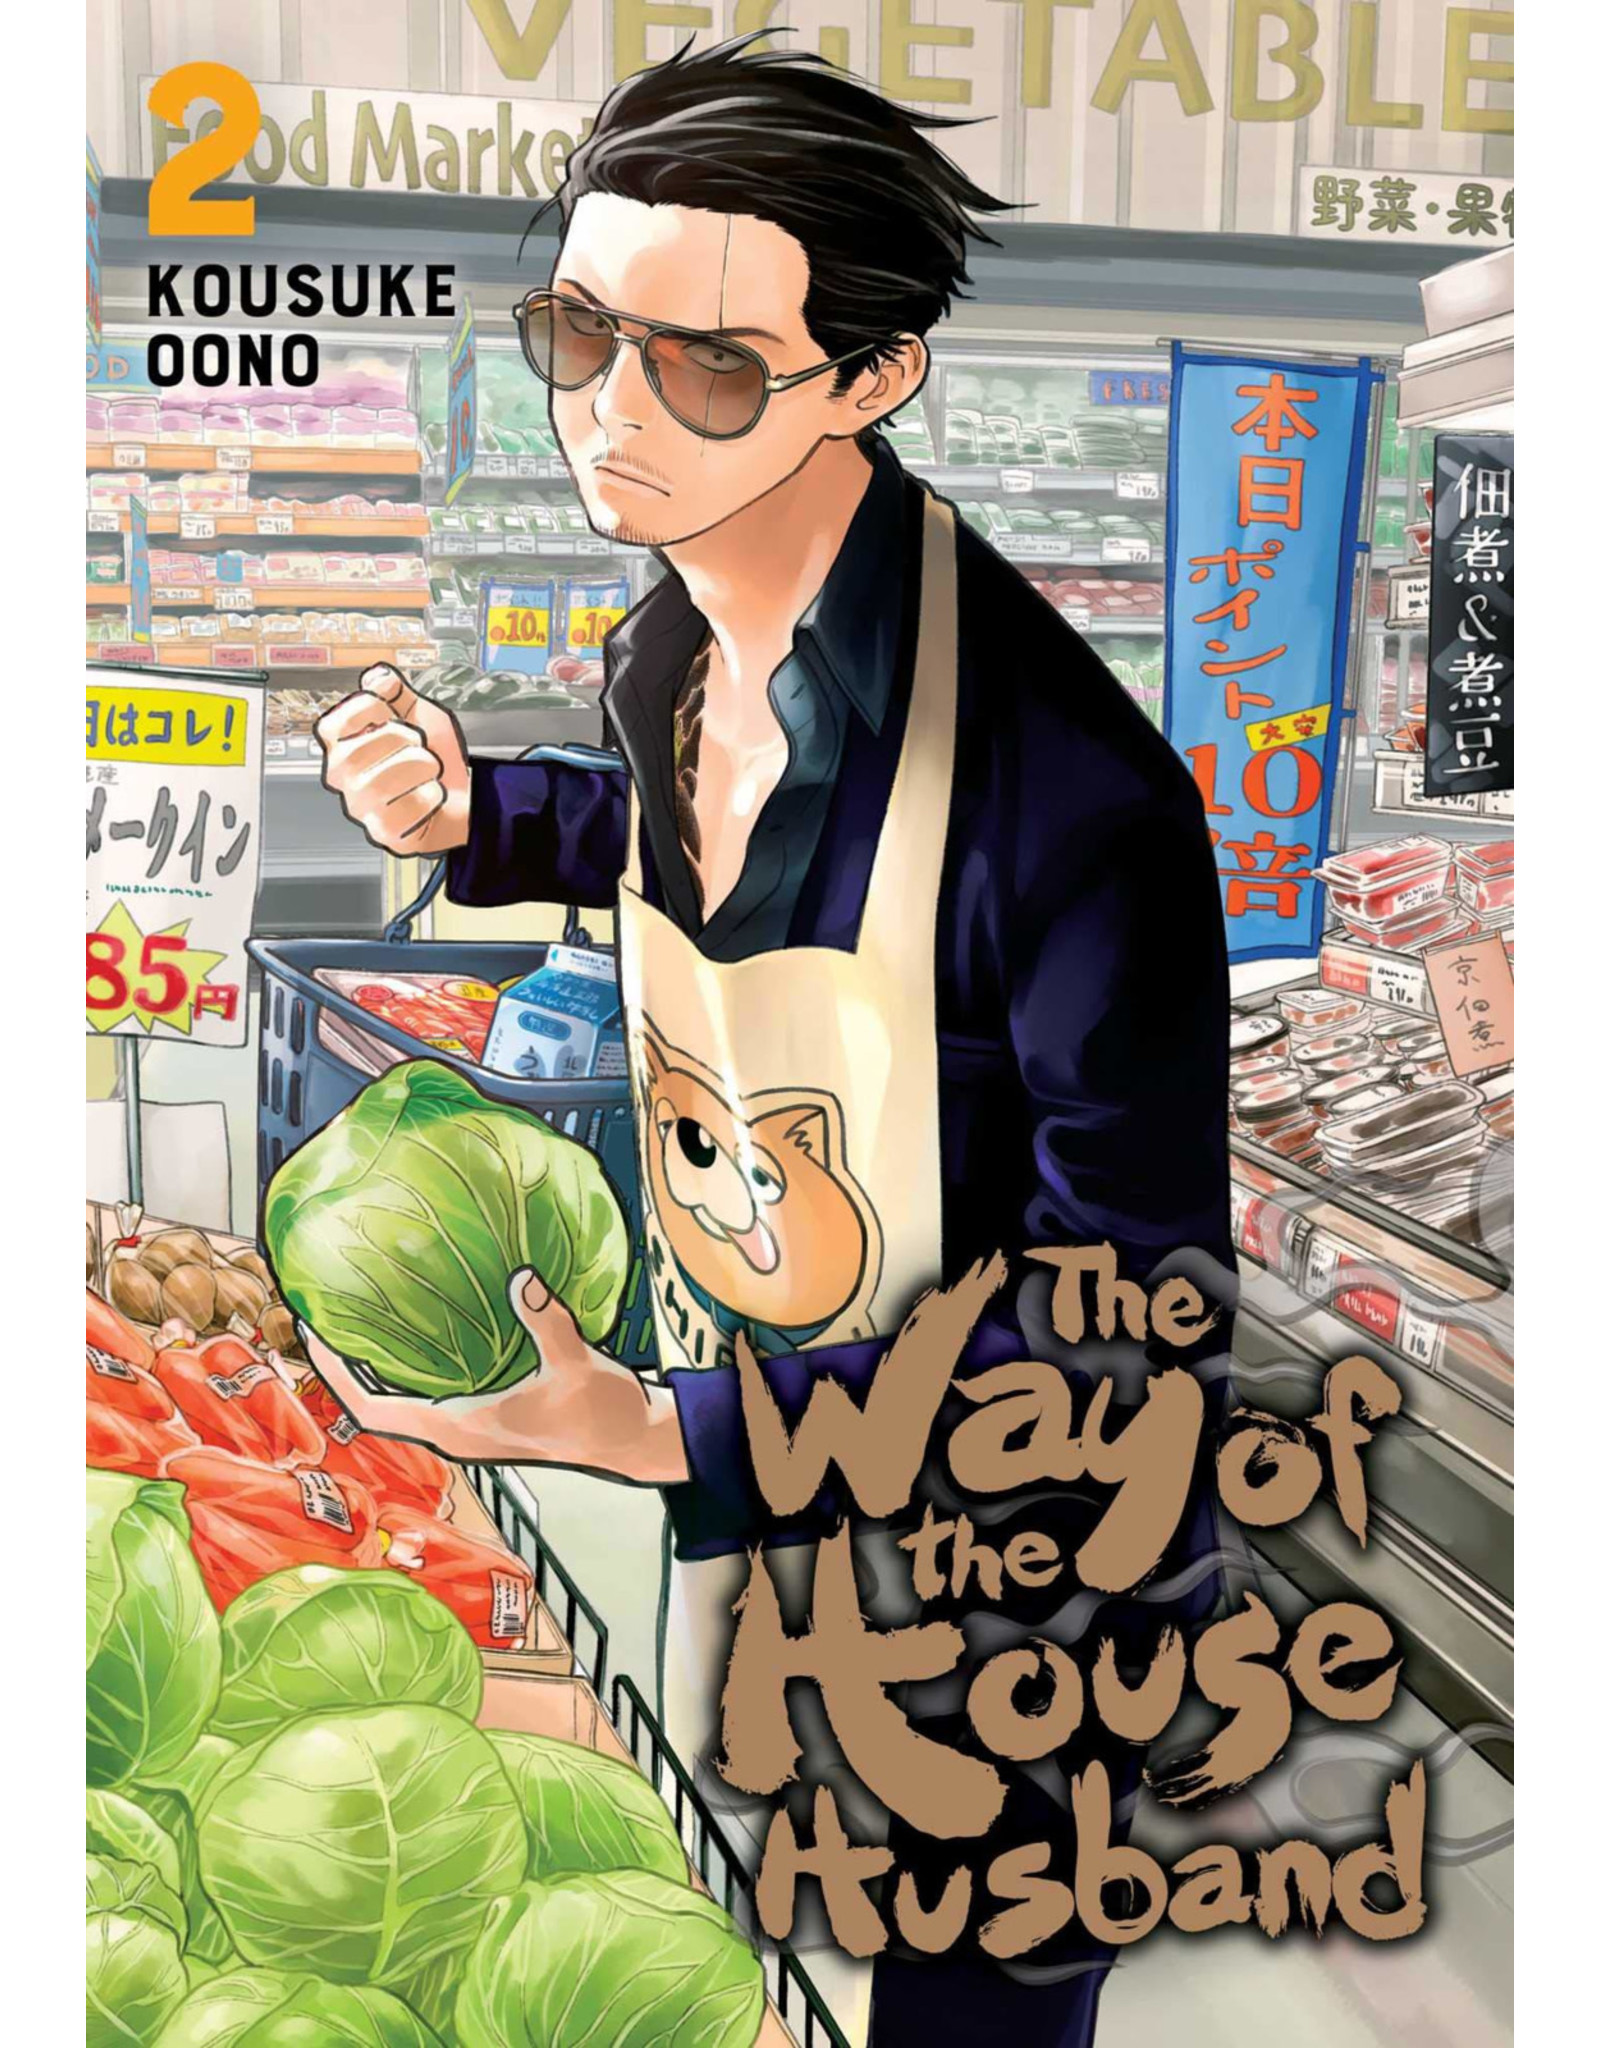 The Way of The House Husband 02 (English Version)